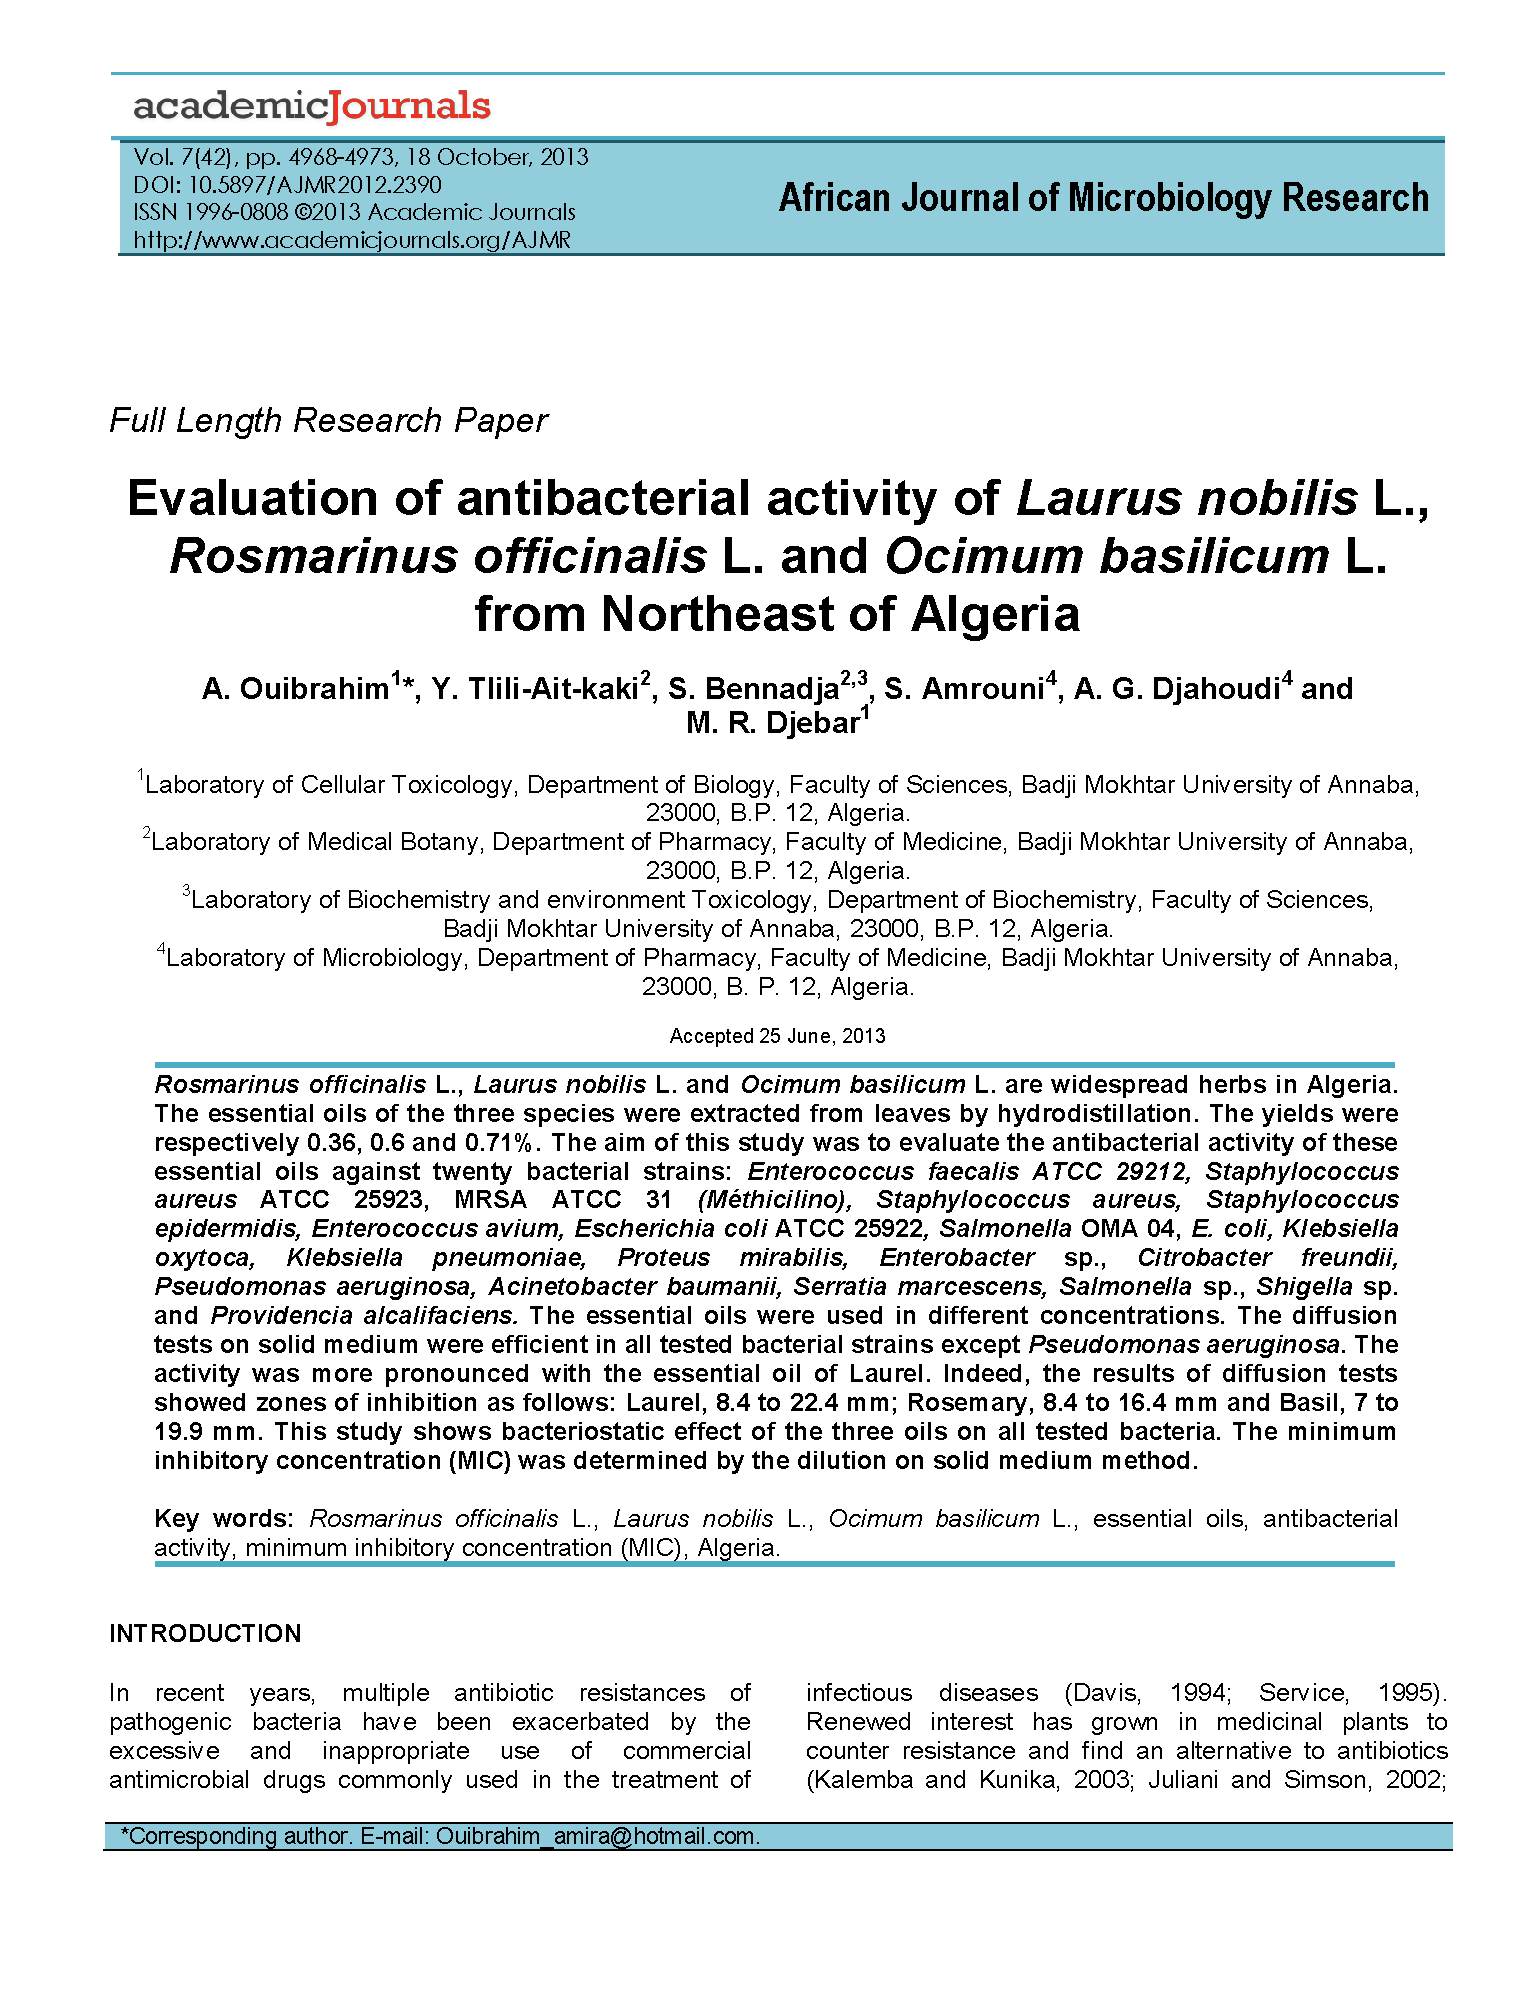 Antibacterial Activity of Laurel Berry, Rosemary, and Basil Oils page 1